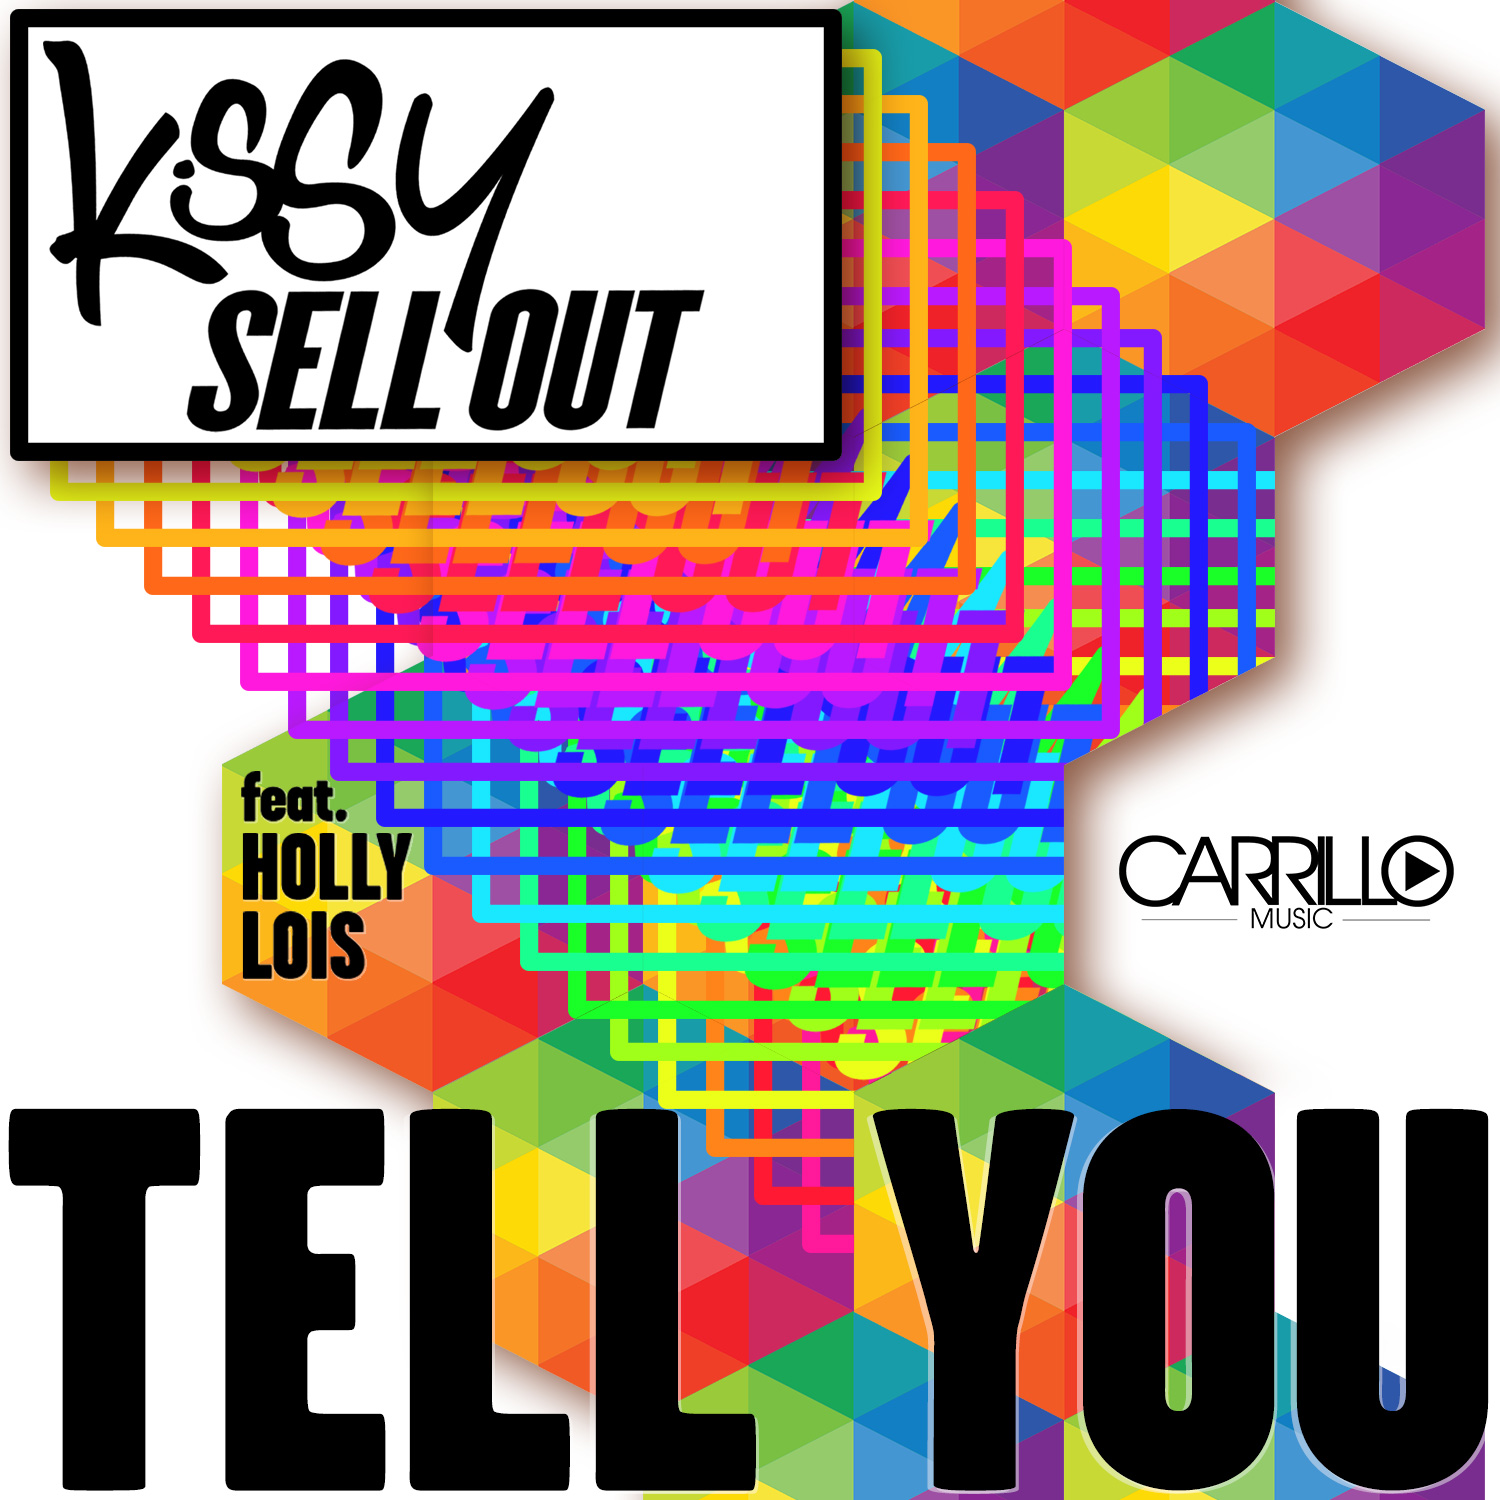 CARRILLO-Kissy-Sell-Out-Tell-You-Cover-Art